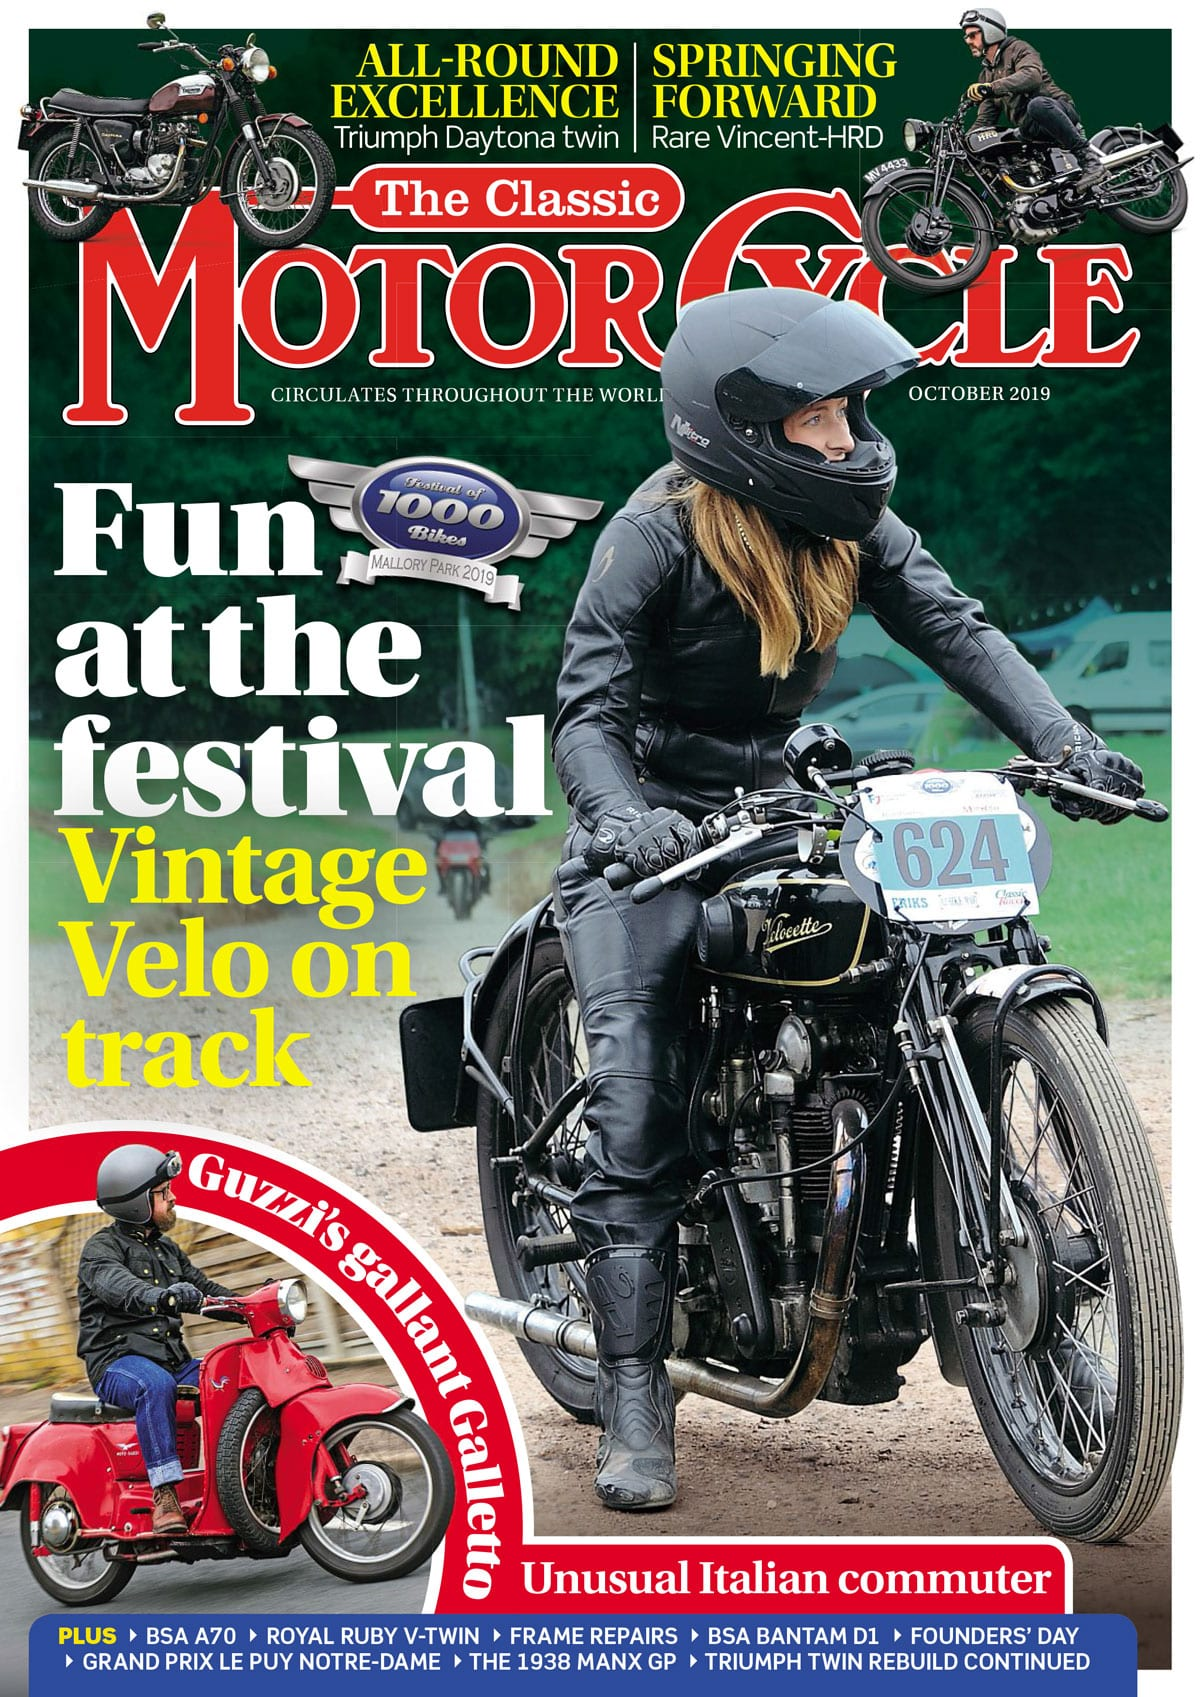 The Classic Motorcycle magazine cover.